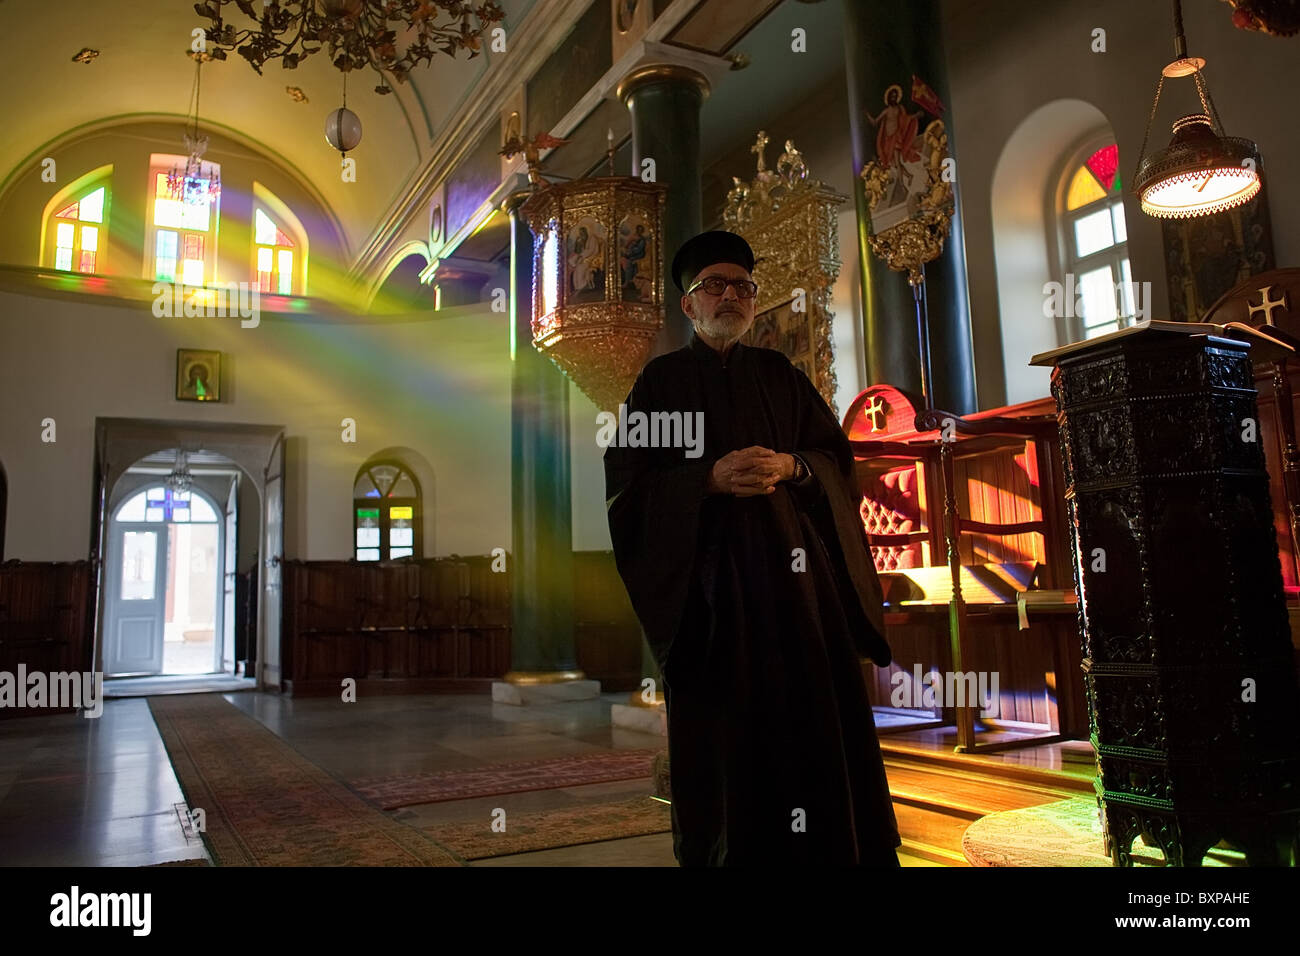 Deacon Dorotheos ending the evening service, Heybeliada, Turkey - Stock Image